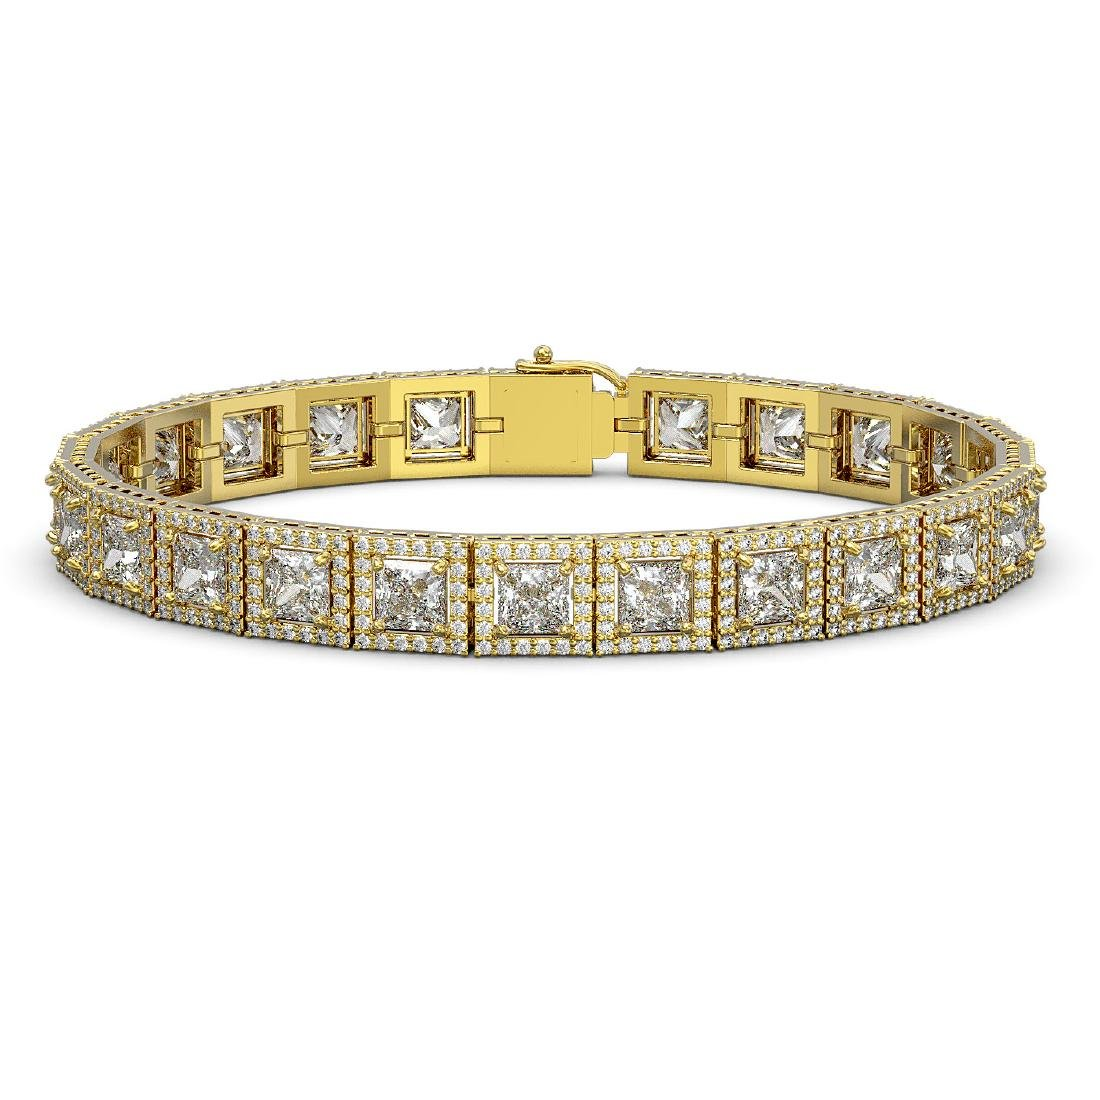 18.24 CTW Princess Diamond Designer Bracelet 18K Yellow